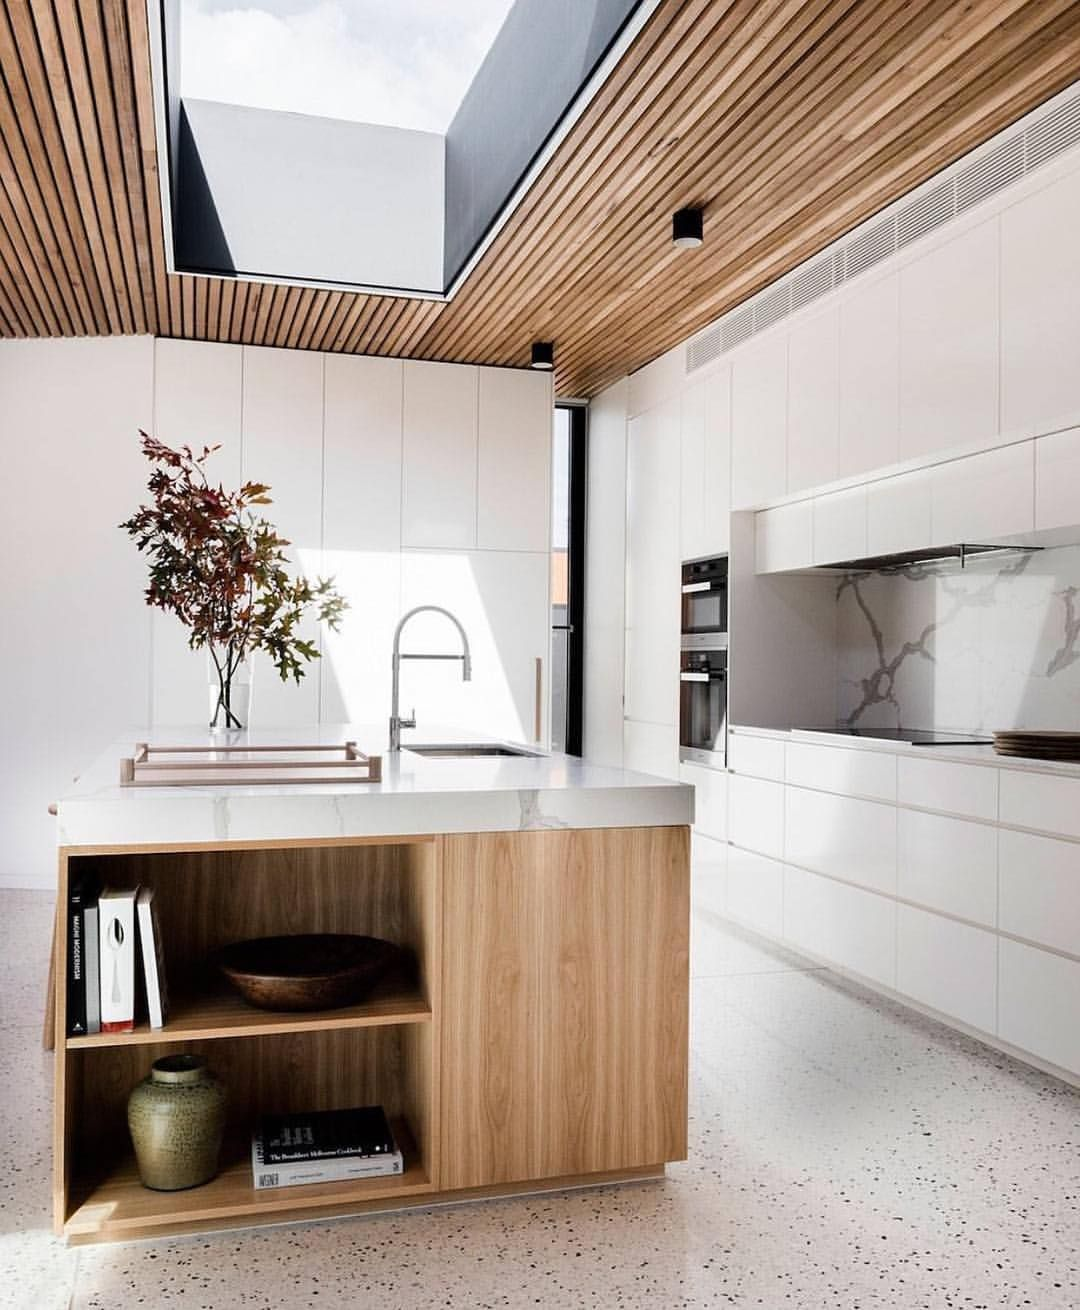 Ceiling Timber: Pin By Aya Kantor On Home Decor